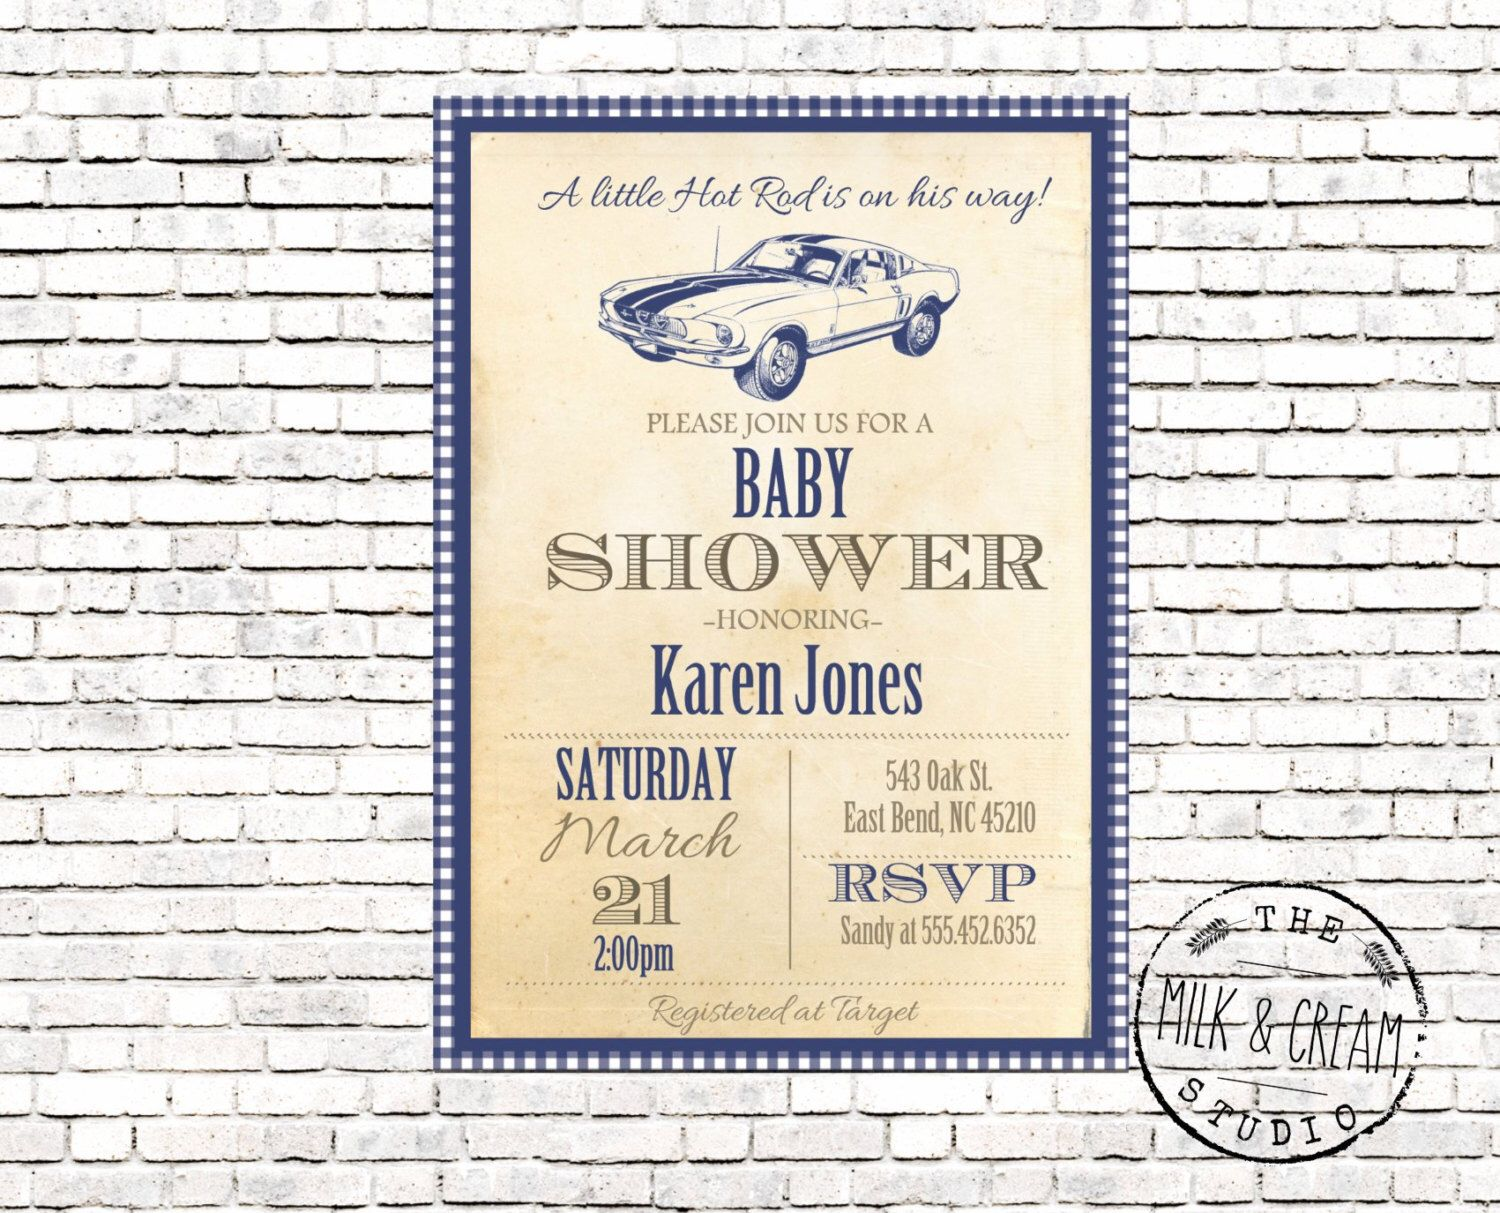 Little Hot Rod Vintage Baby Shower Invite, Invitation with Classic ...